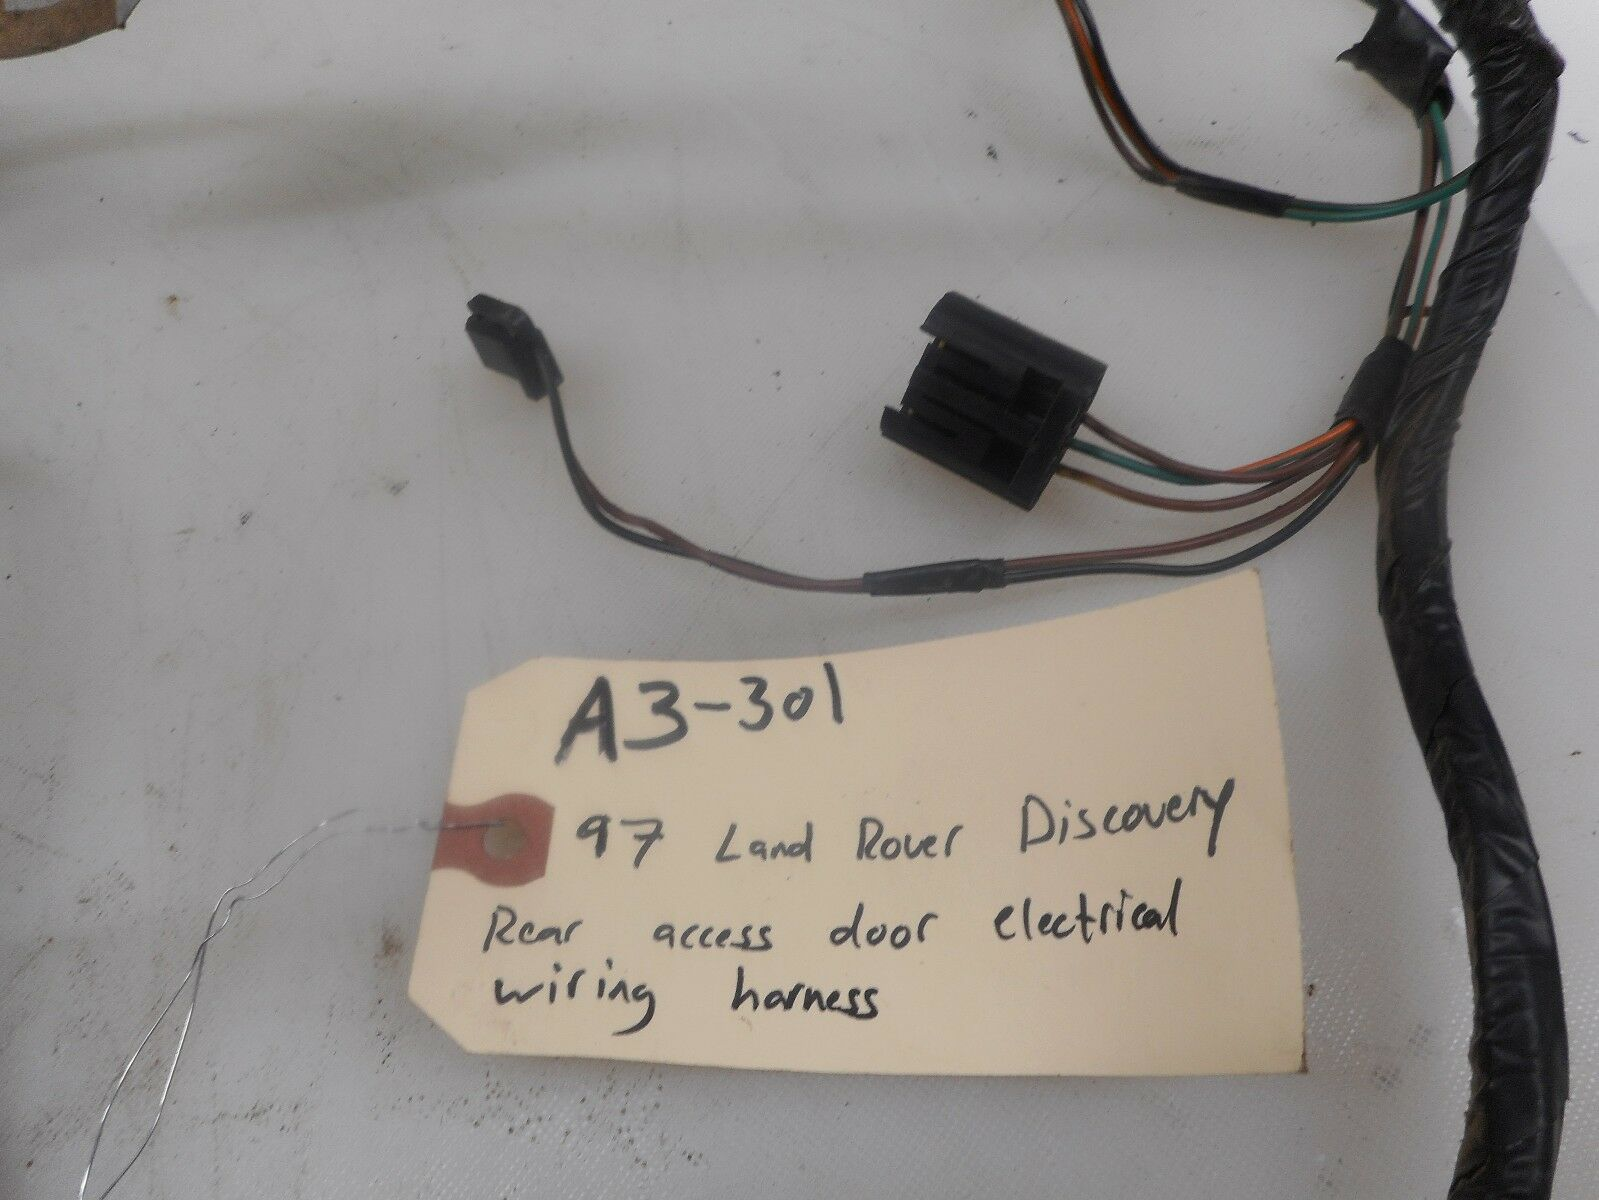 used 1997 land rover discovery interior door panels and parts for 1997 land rover discovery rear access door electrical wiring harness cargo